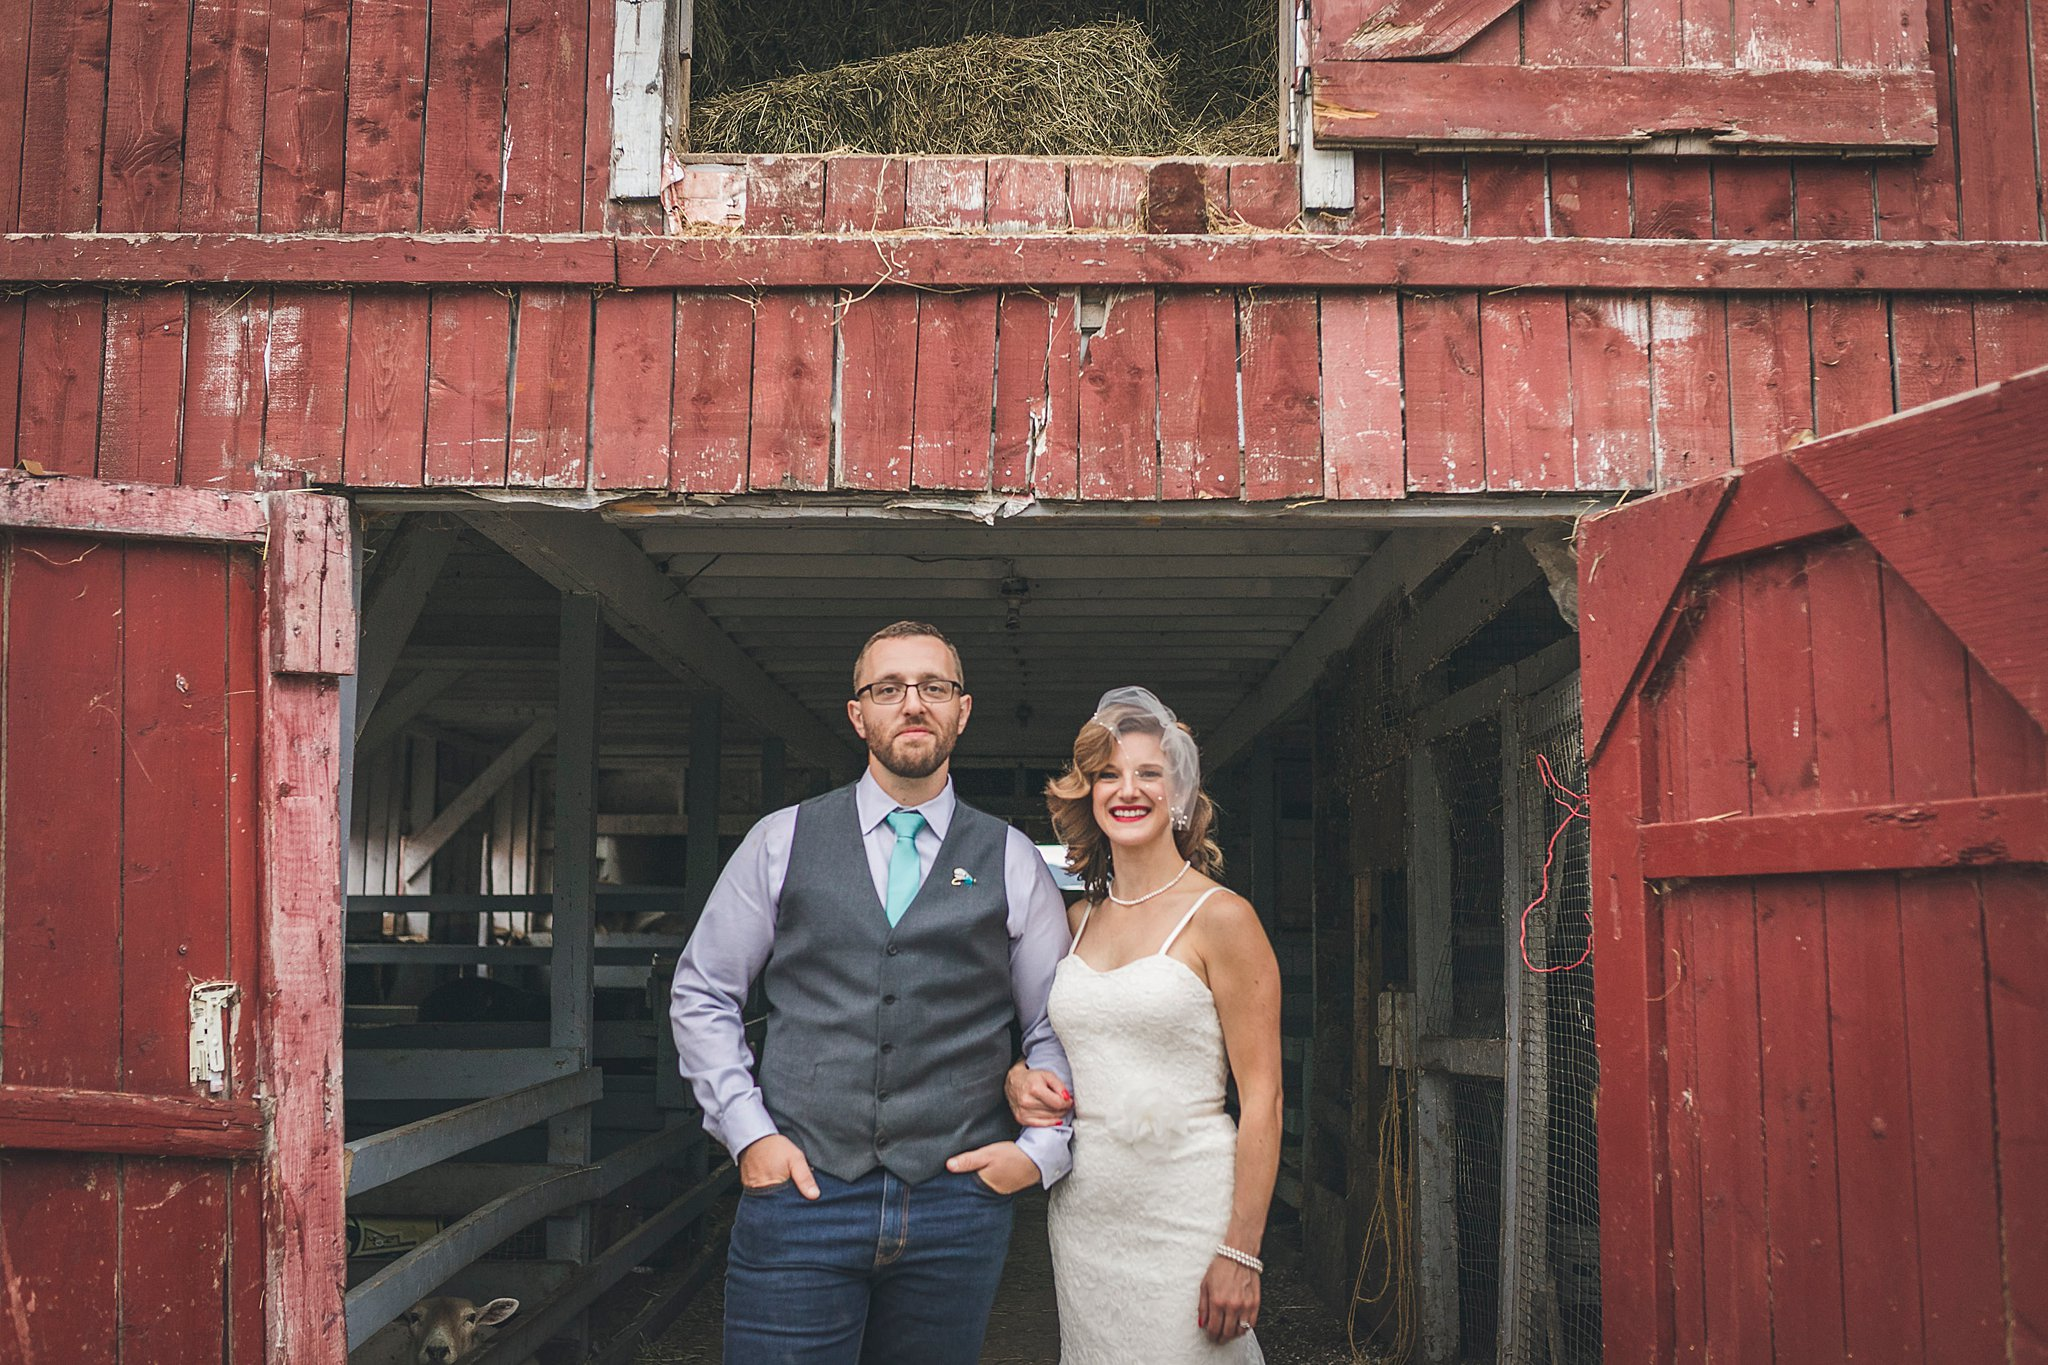 Newly married couple at their wedding held in St. John's, Newfoundland